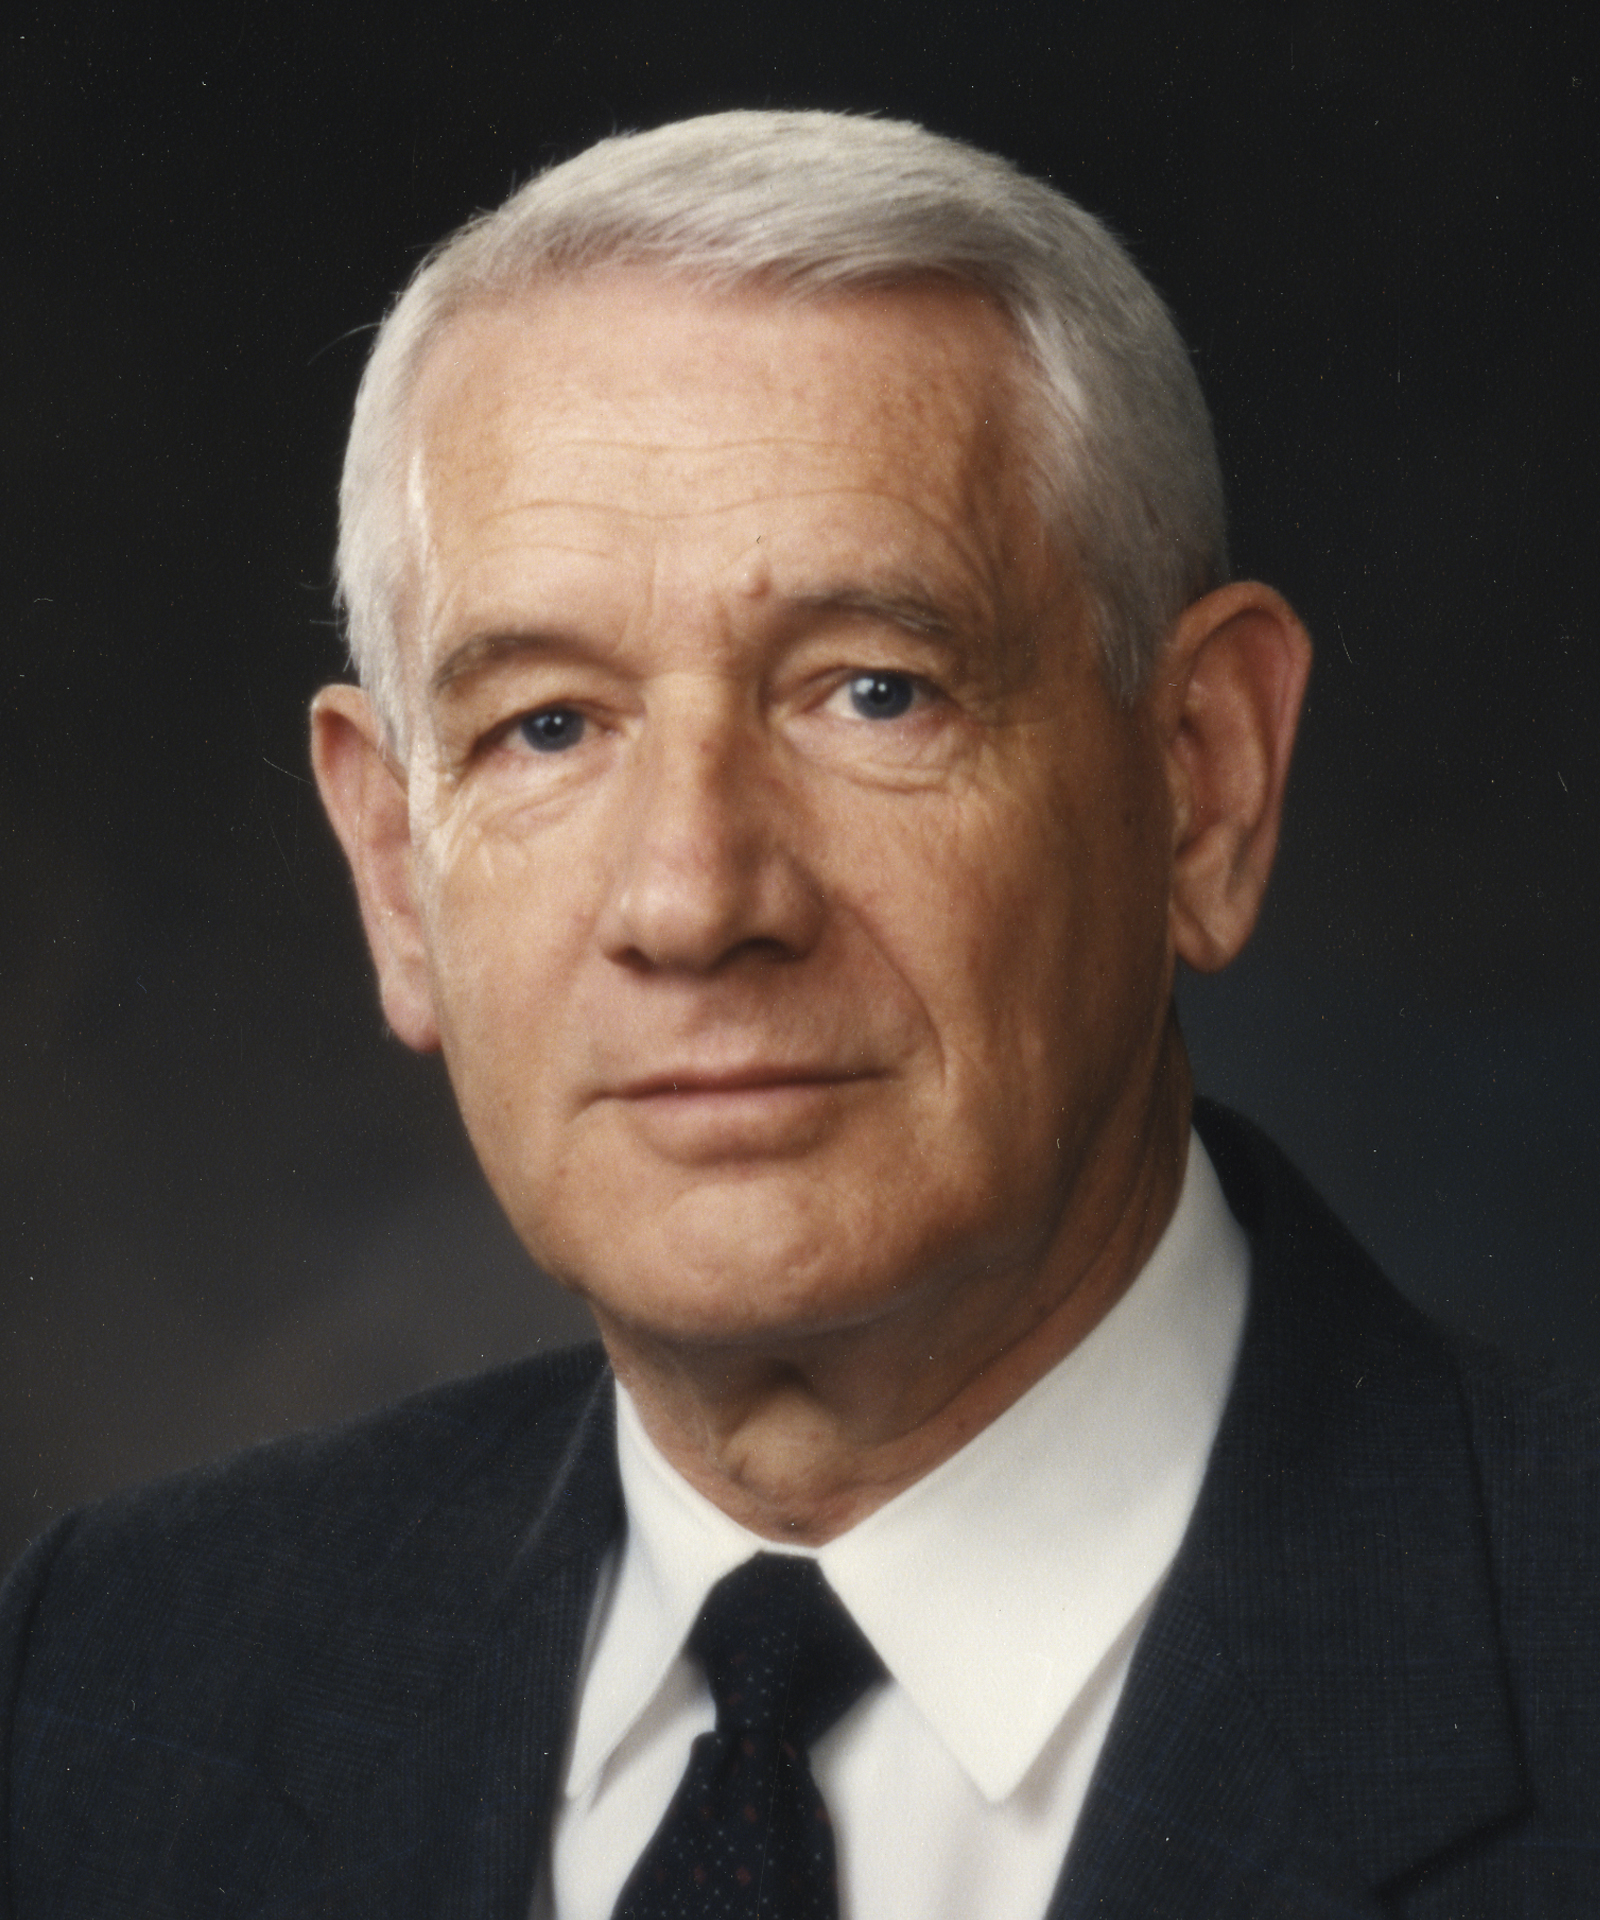 Elder Dean L. Larsen, who served as a General Authority Seventy from 1976-1997.